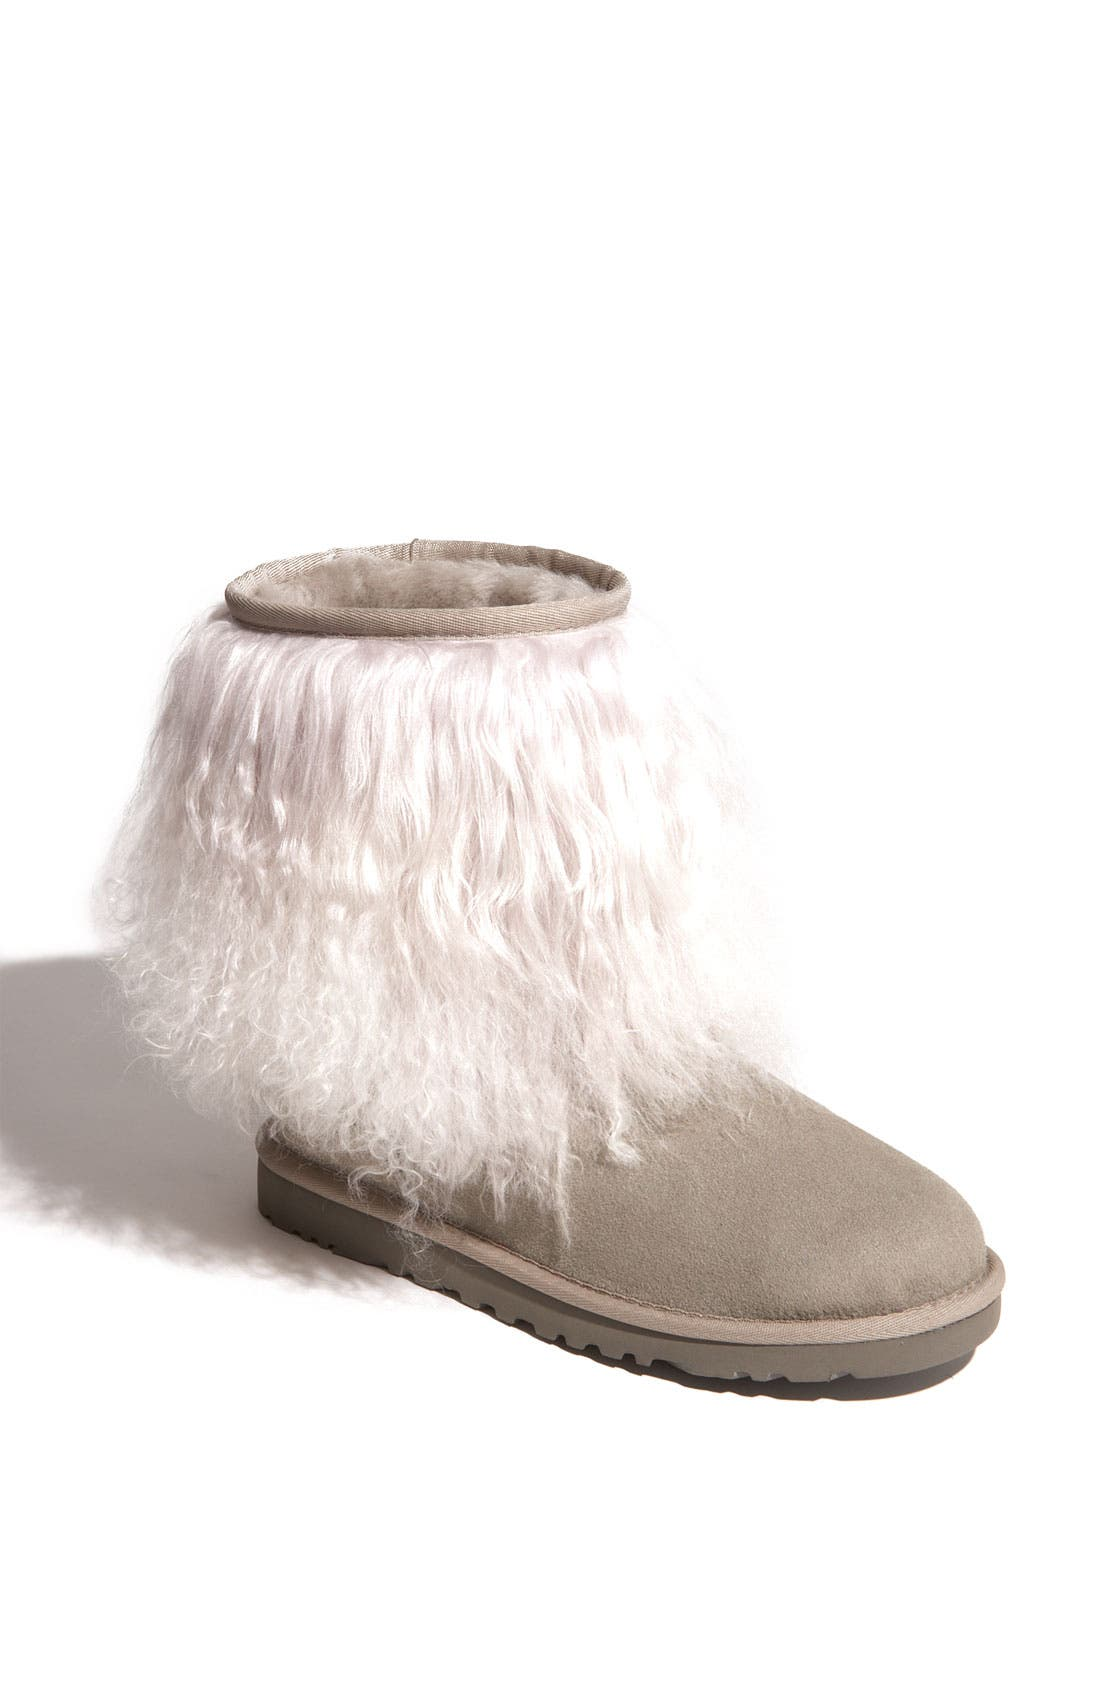 Alternate Image 1 Selected - UGG® Australia Shearling Cuff Boot (Women)